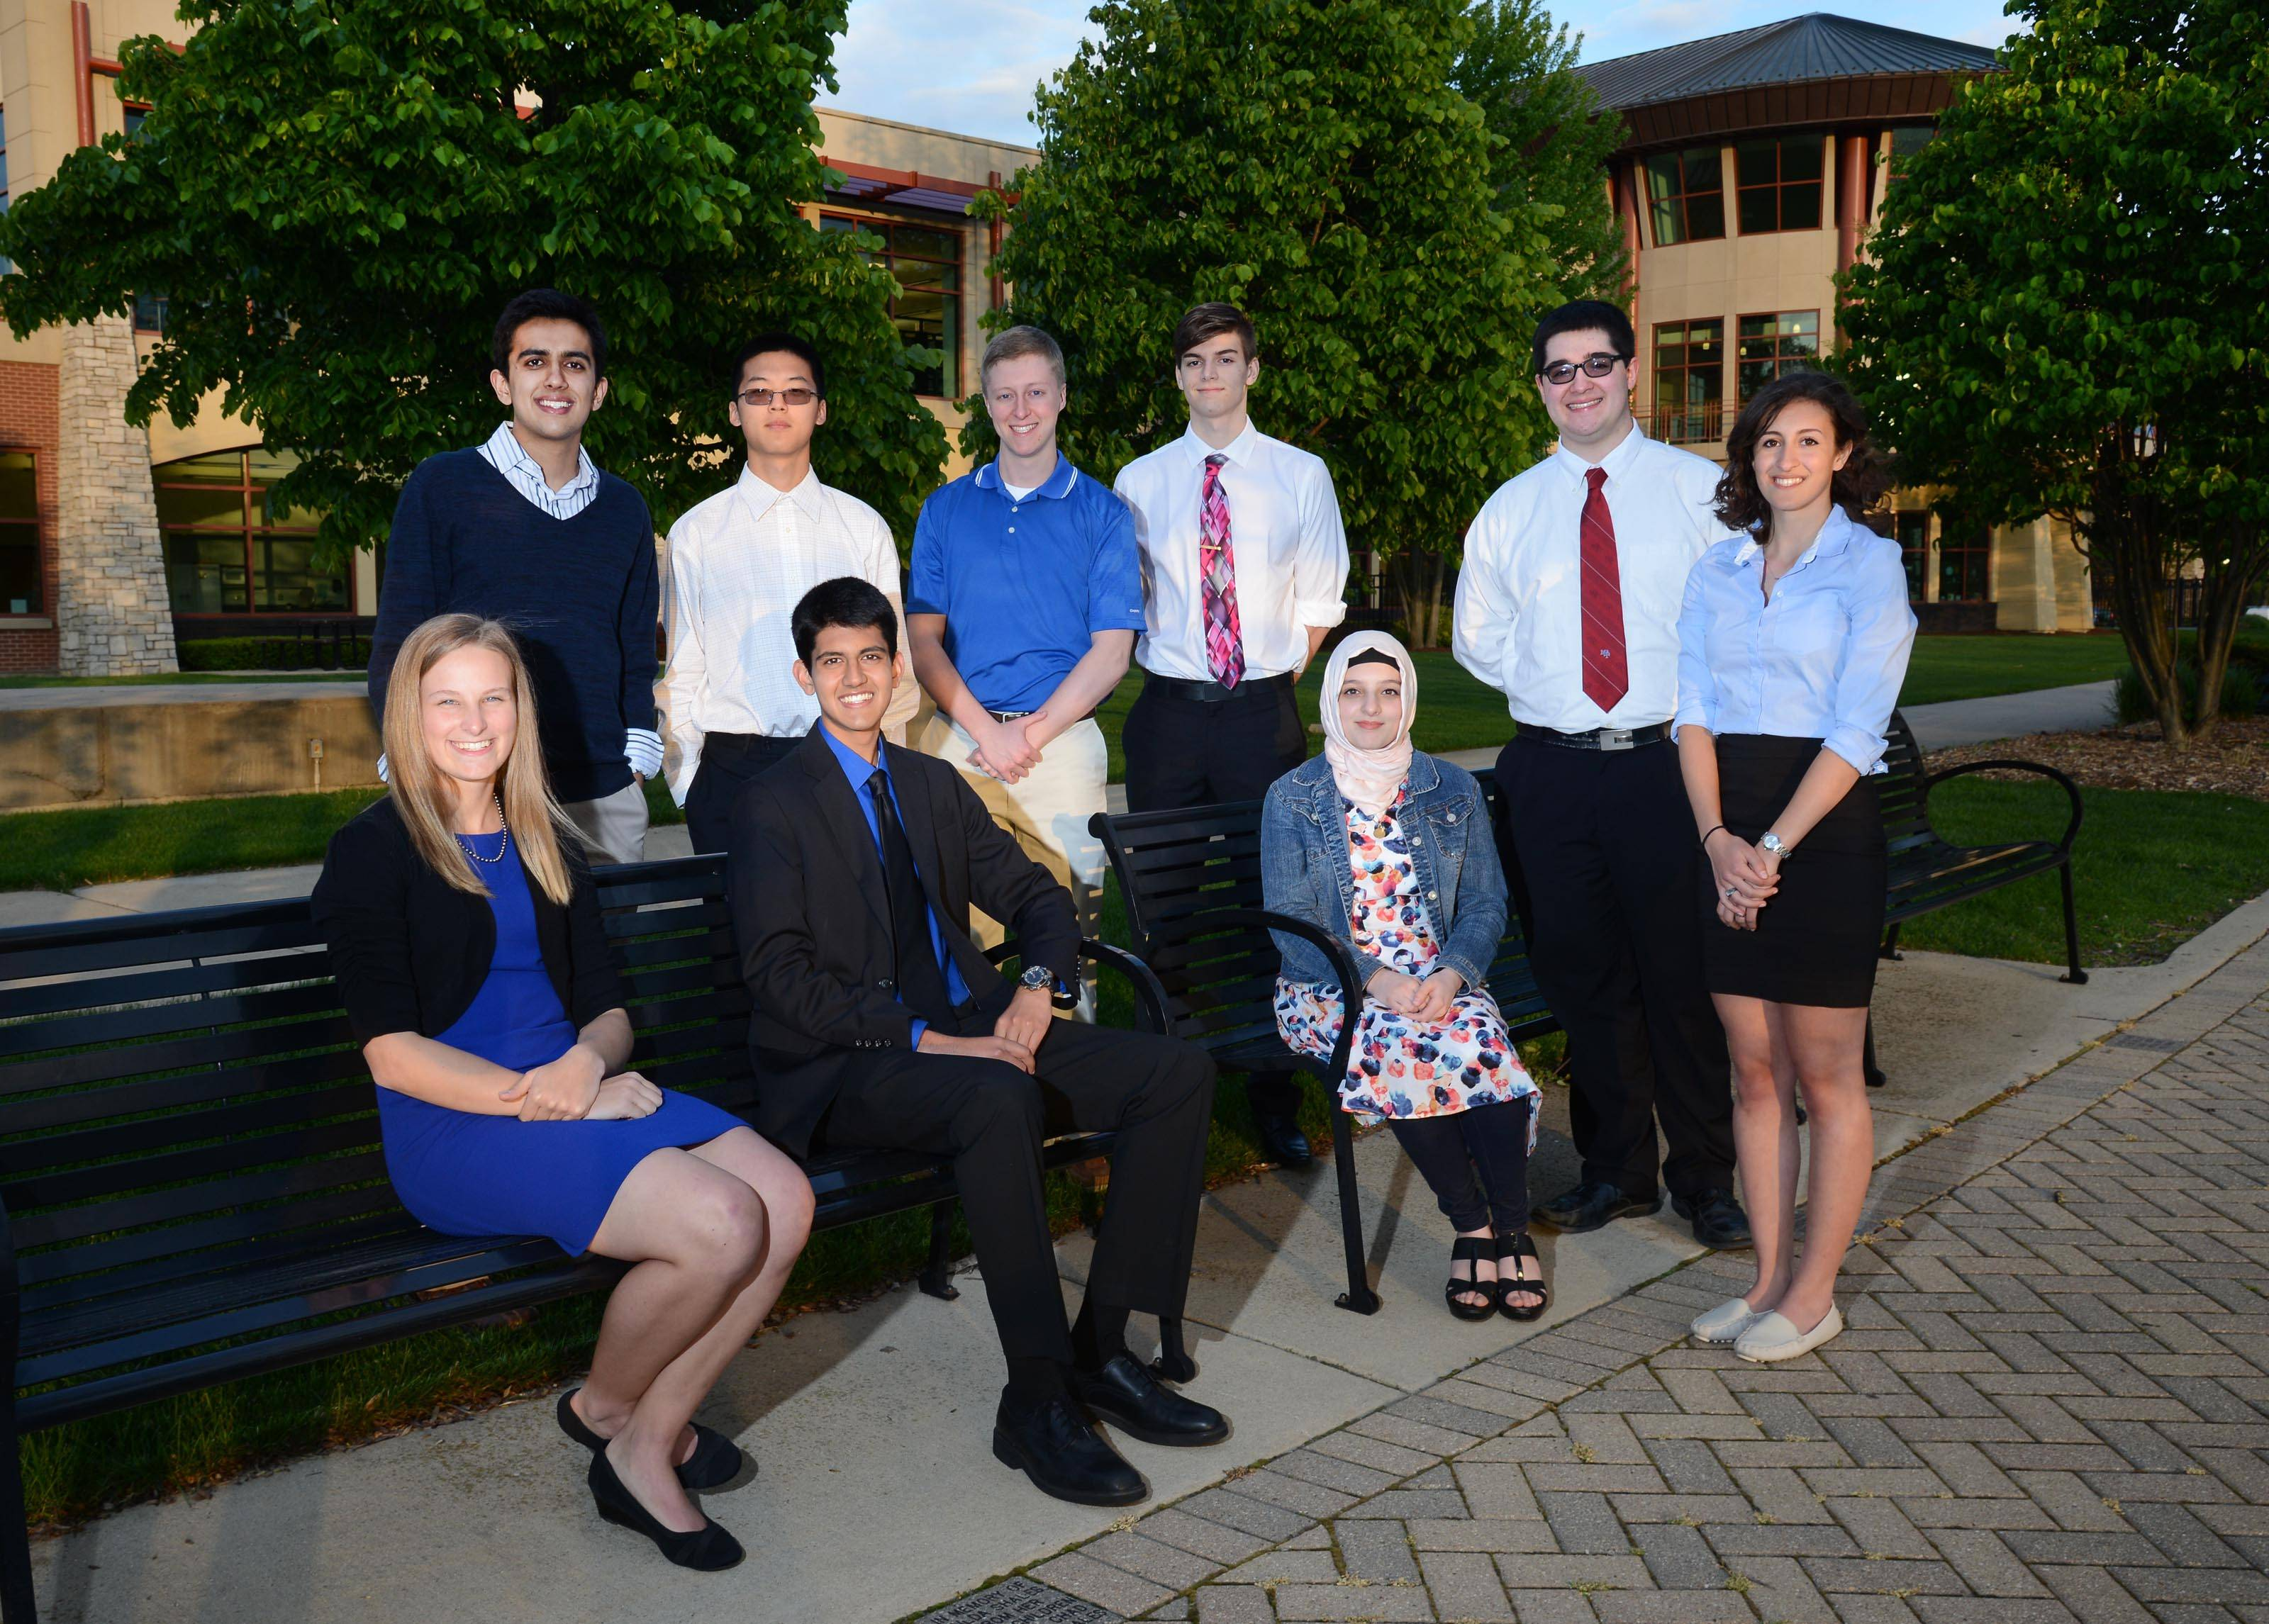 The 2015-16 Fox Valley Daily Herald Academic Team outside the Gail Borden Library in Elgin. Sitting, from left: Hannah Gillespie, Marian Central Catholic High School; Parth Shah, Harry D. Jacobs High School; Deniz Namik, Dundee-Crown High School. Standing, from left: Archan Vyas, St. Charles North High School; Andrew Park, St. Charles East High School; Michael Wilkins, Geneva Community High School; Matthew Cannalte, Huntley High School; Harrison Kearby, Marmion Academy and Valerie Scimeca, Elgin Academy. Not pictured, Alyssa Gao, Batavia High School.